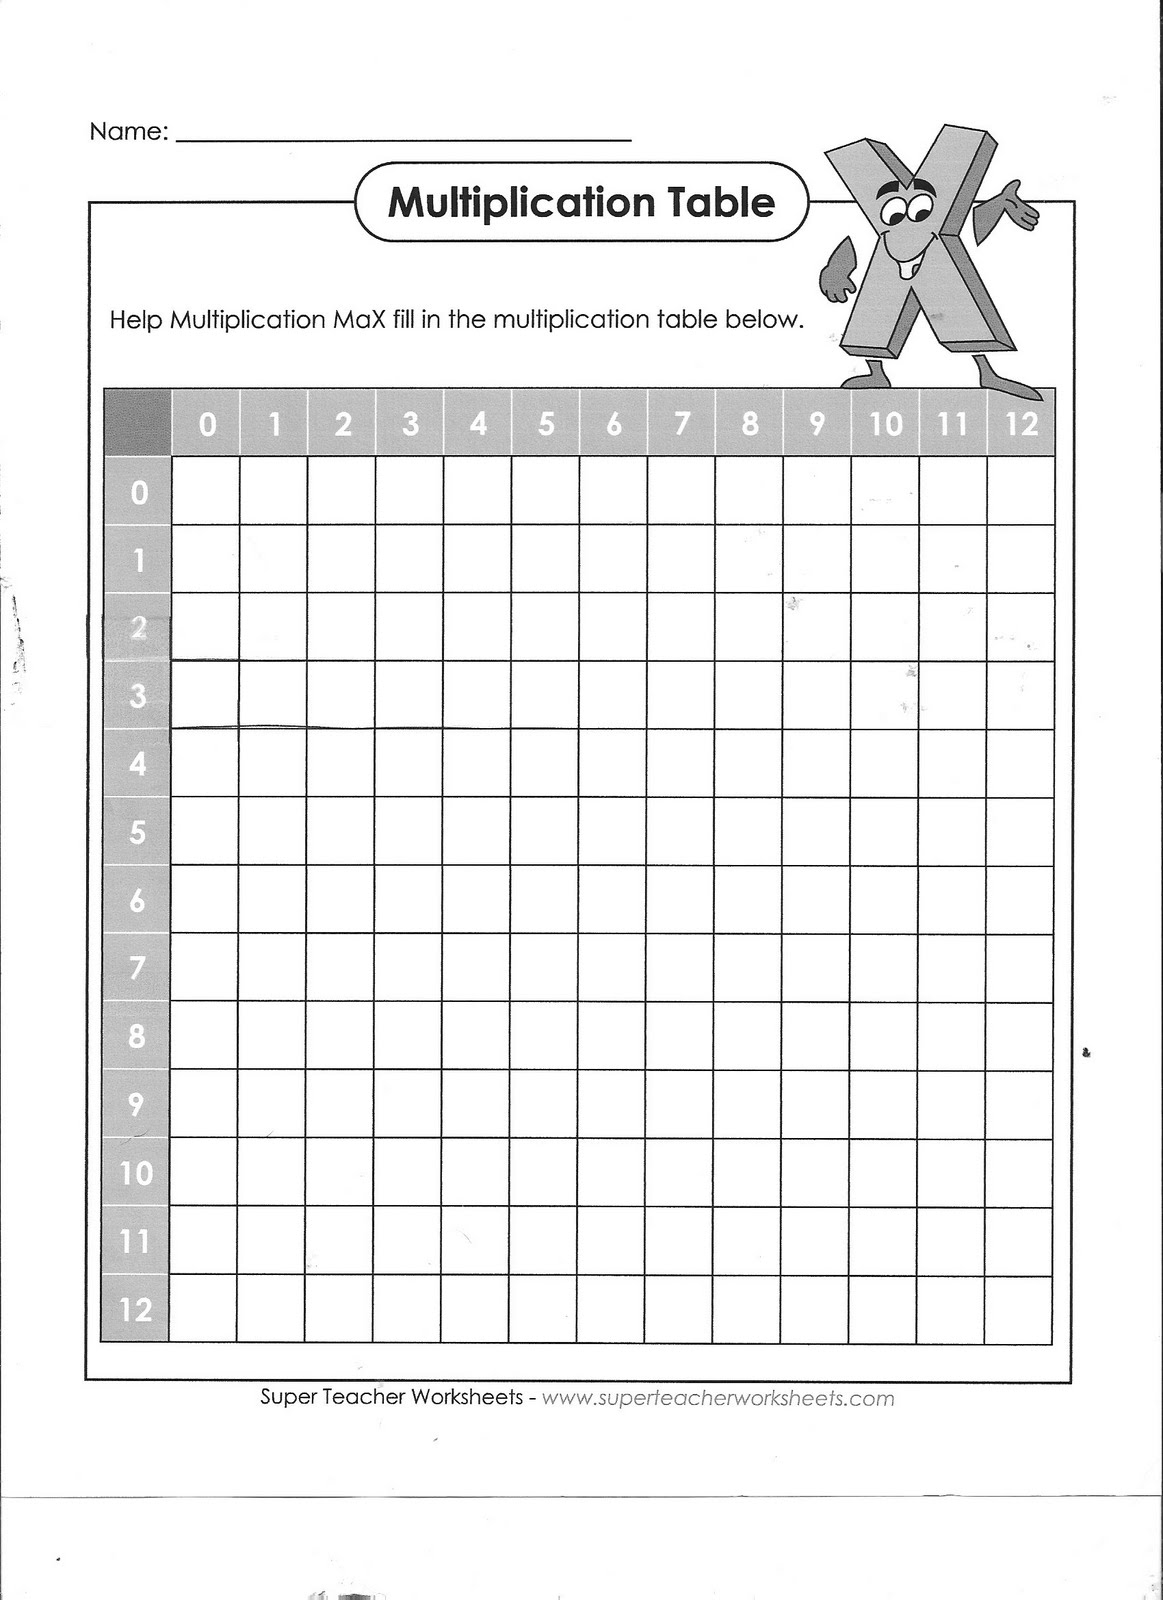 Multiplication Worksheets multiplication worksheets 1-12 : worksheet. Multiplication Chart 0-12. Gabrieltoz Worksheets for ...